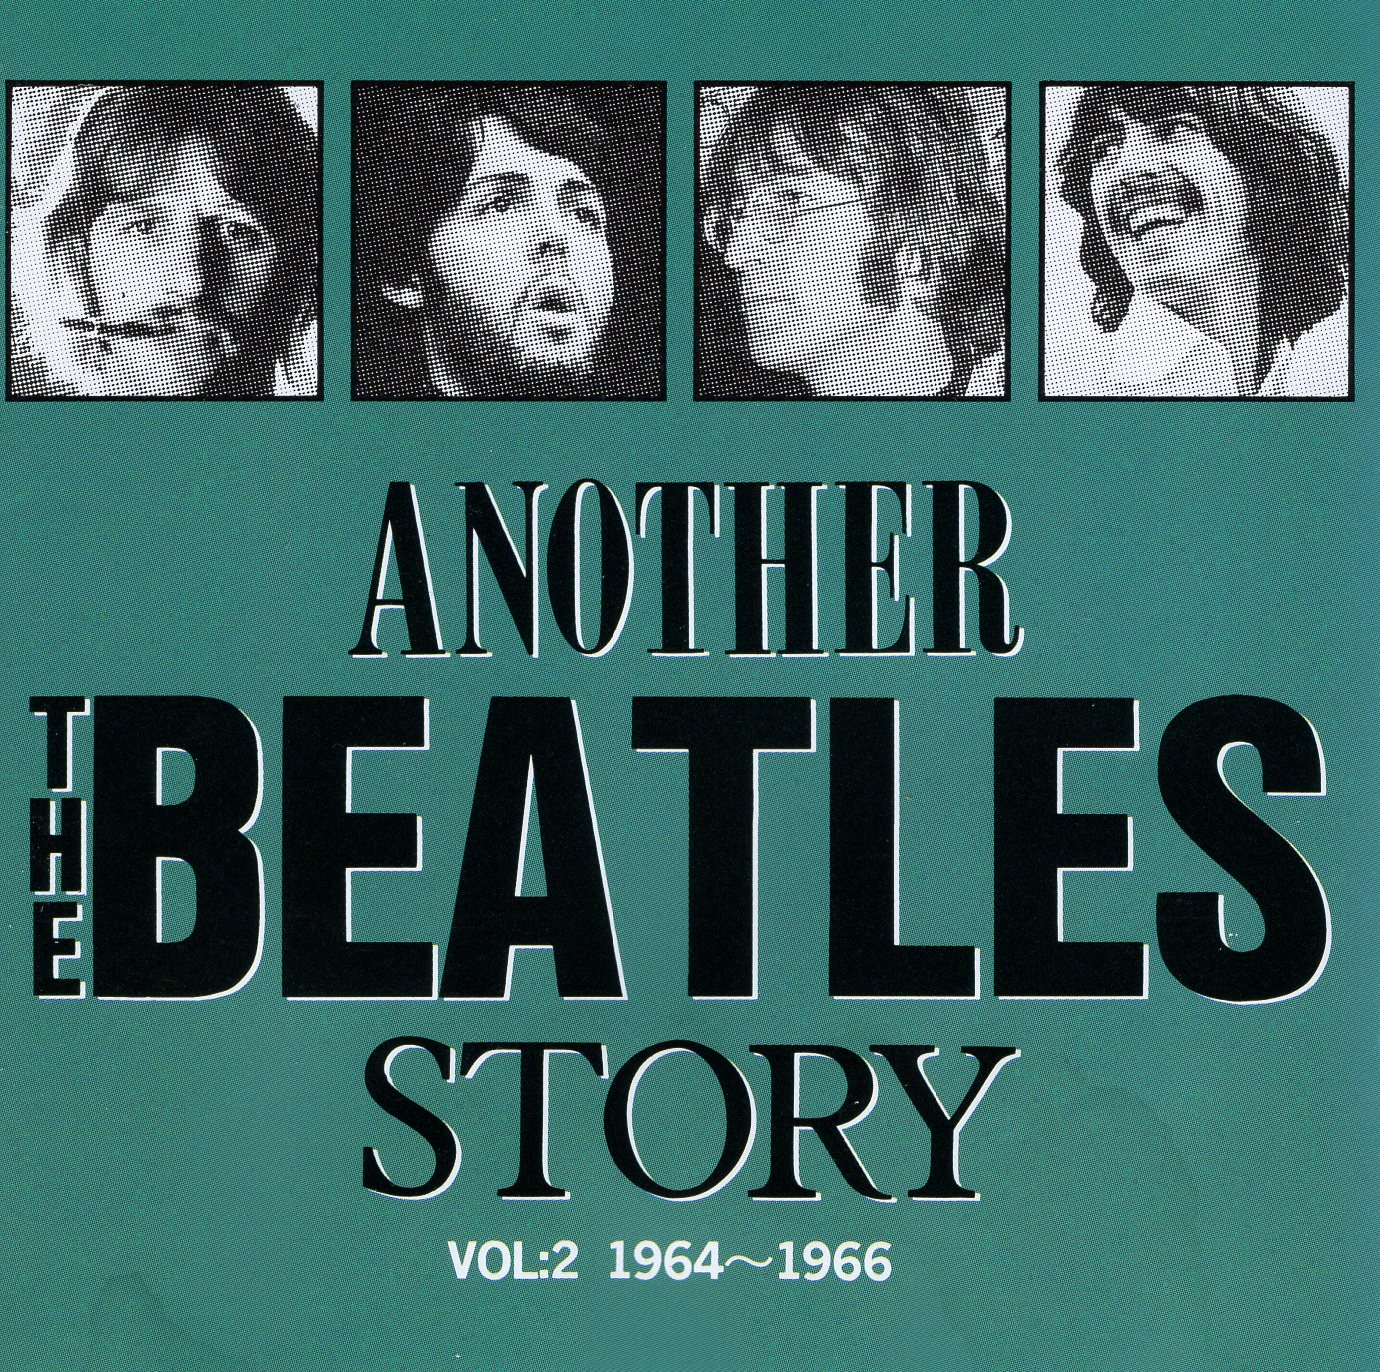 """Another Beatles Story Vol.2"" The Beatles"